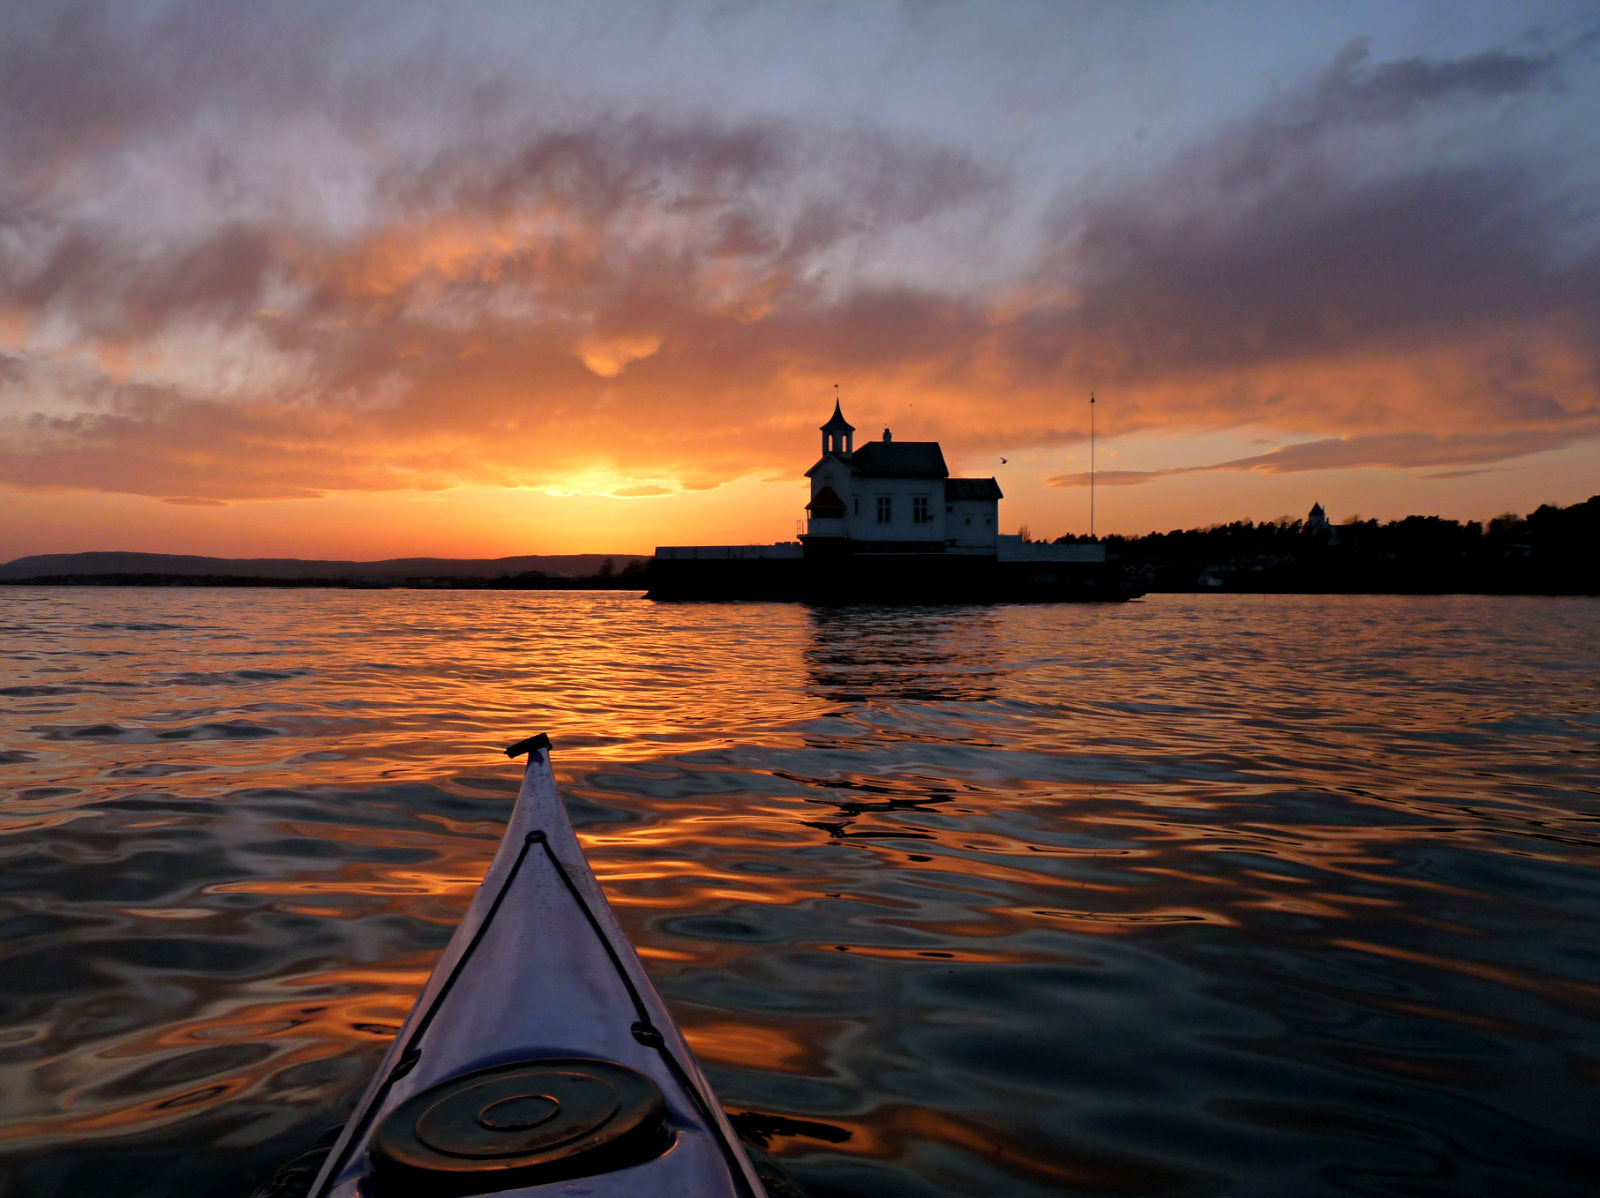 Photograph Sunset from kayak by Päivi Kaarina on 500px